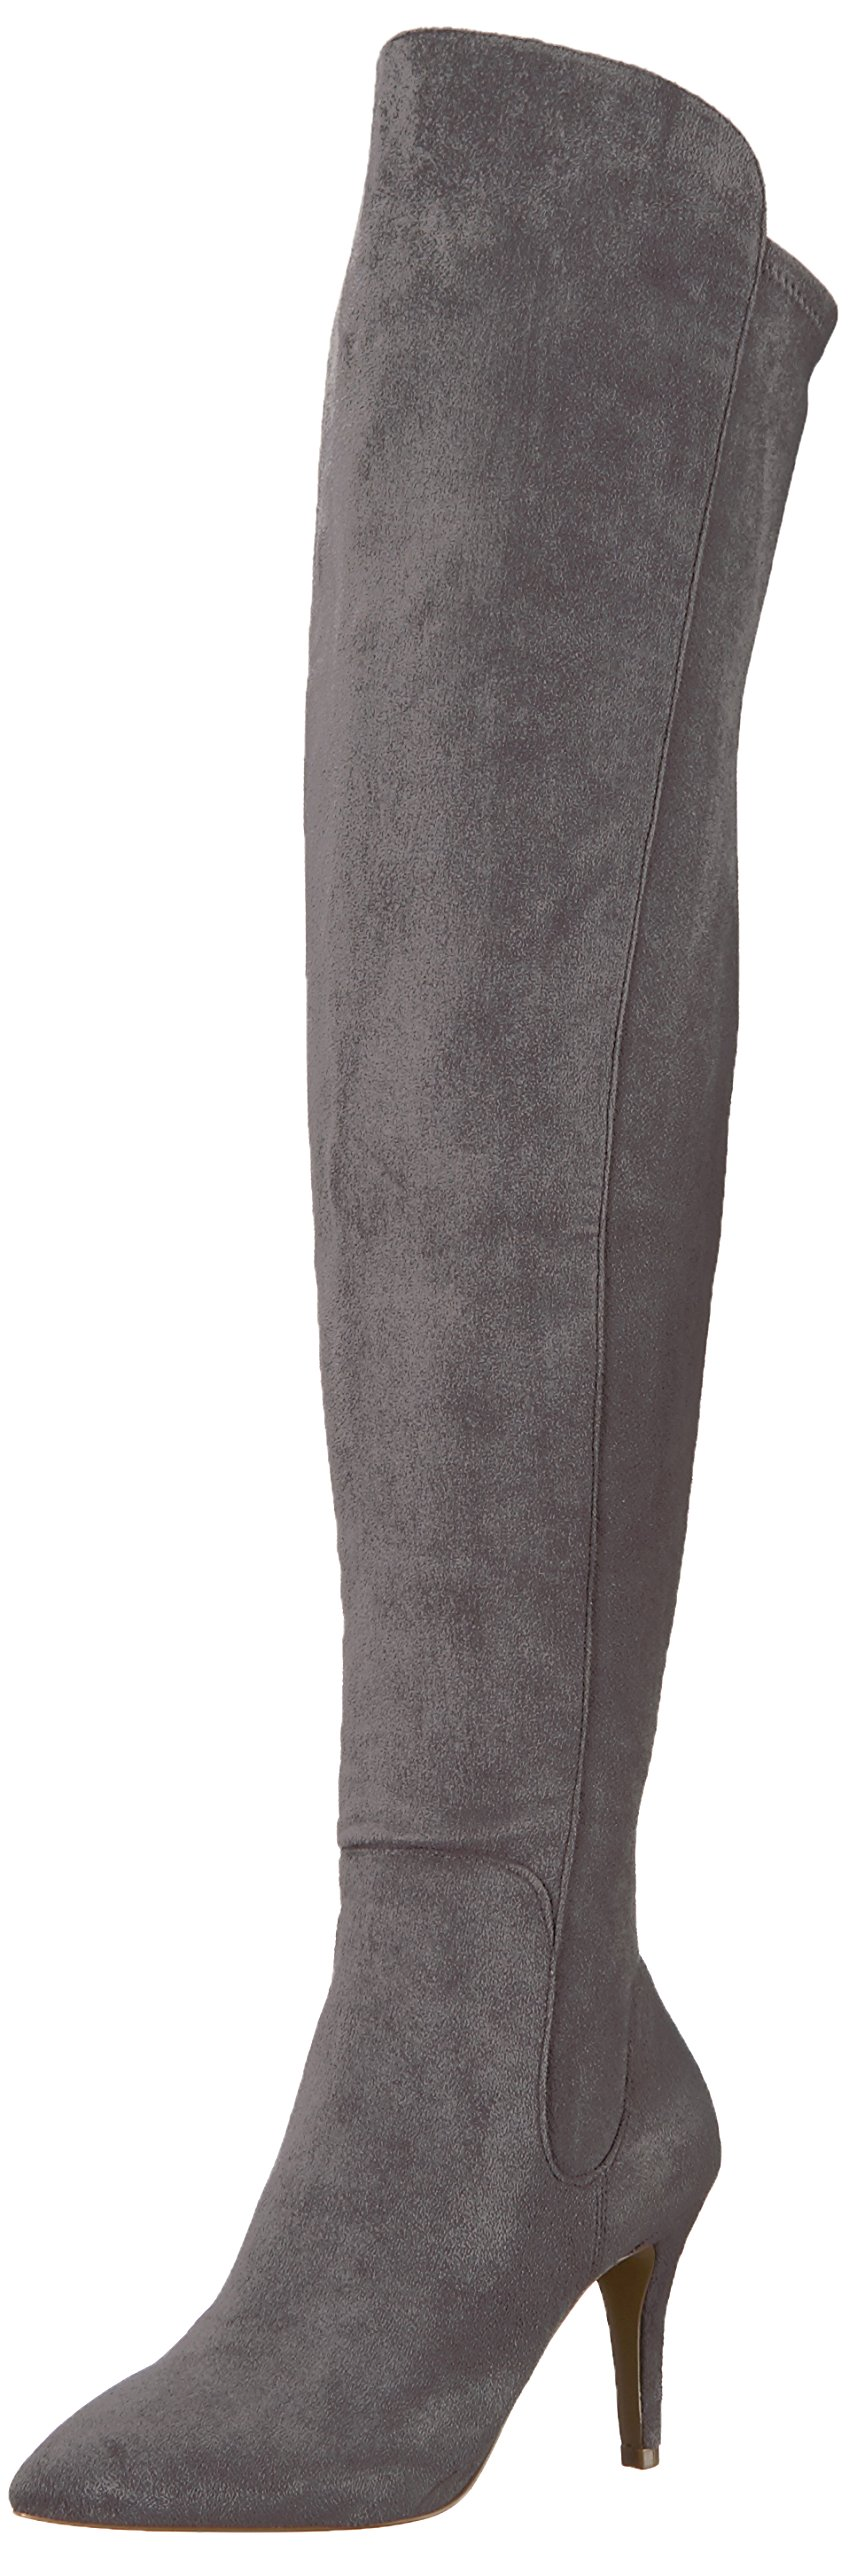 Style by Charles David Women's Vince Fashion Boot, Grey, 6 Medium US by Style by Charles David